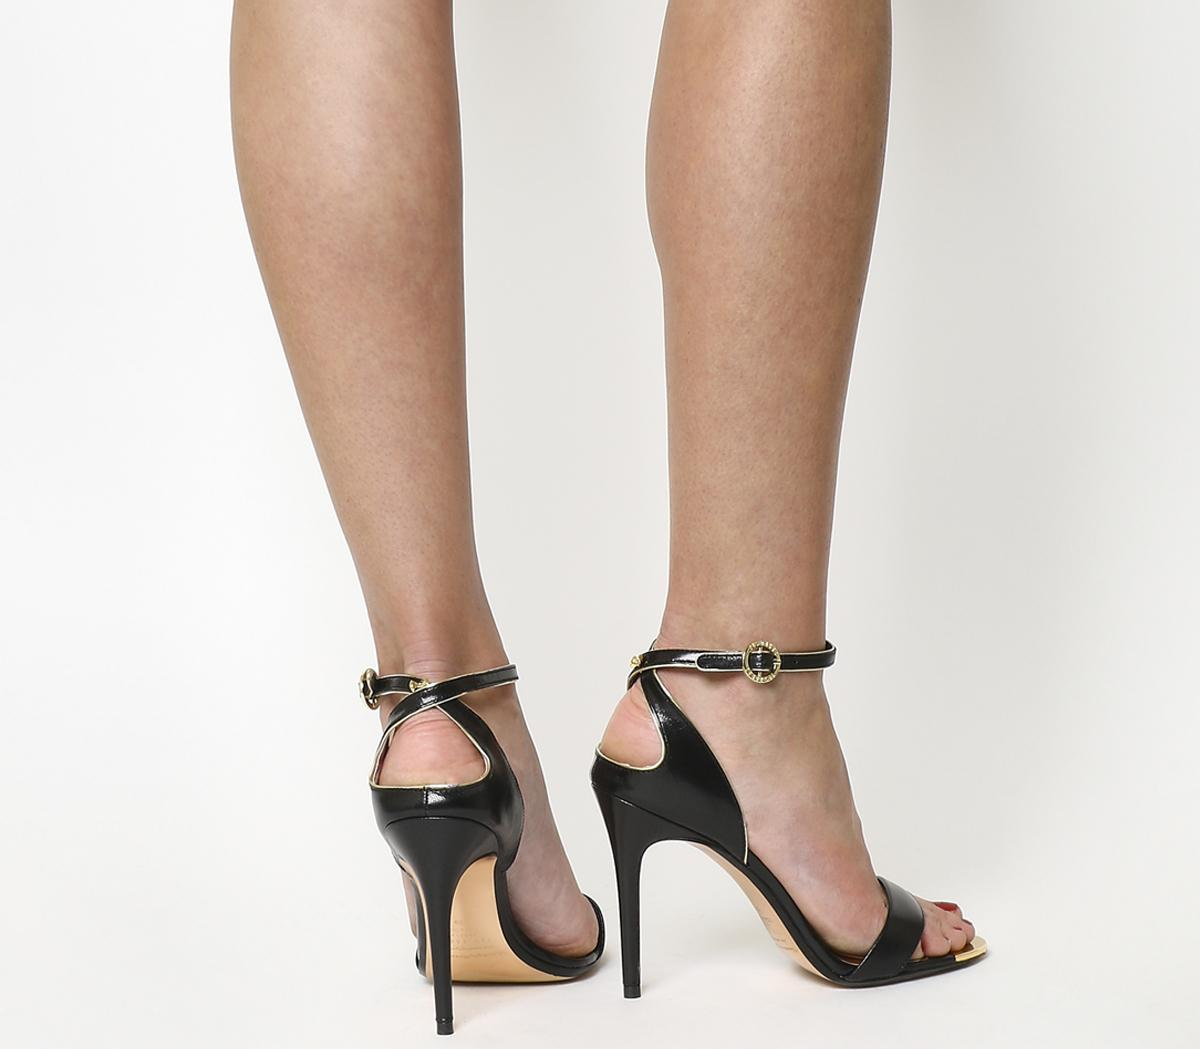 28a28a7c3 Ted Baker Mirobell Strappy Heels Black Leather - High Heels